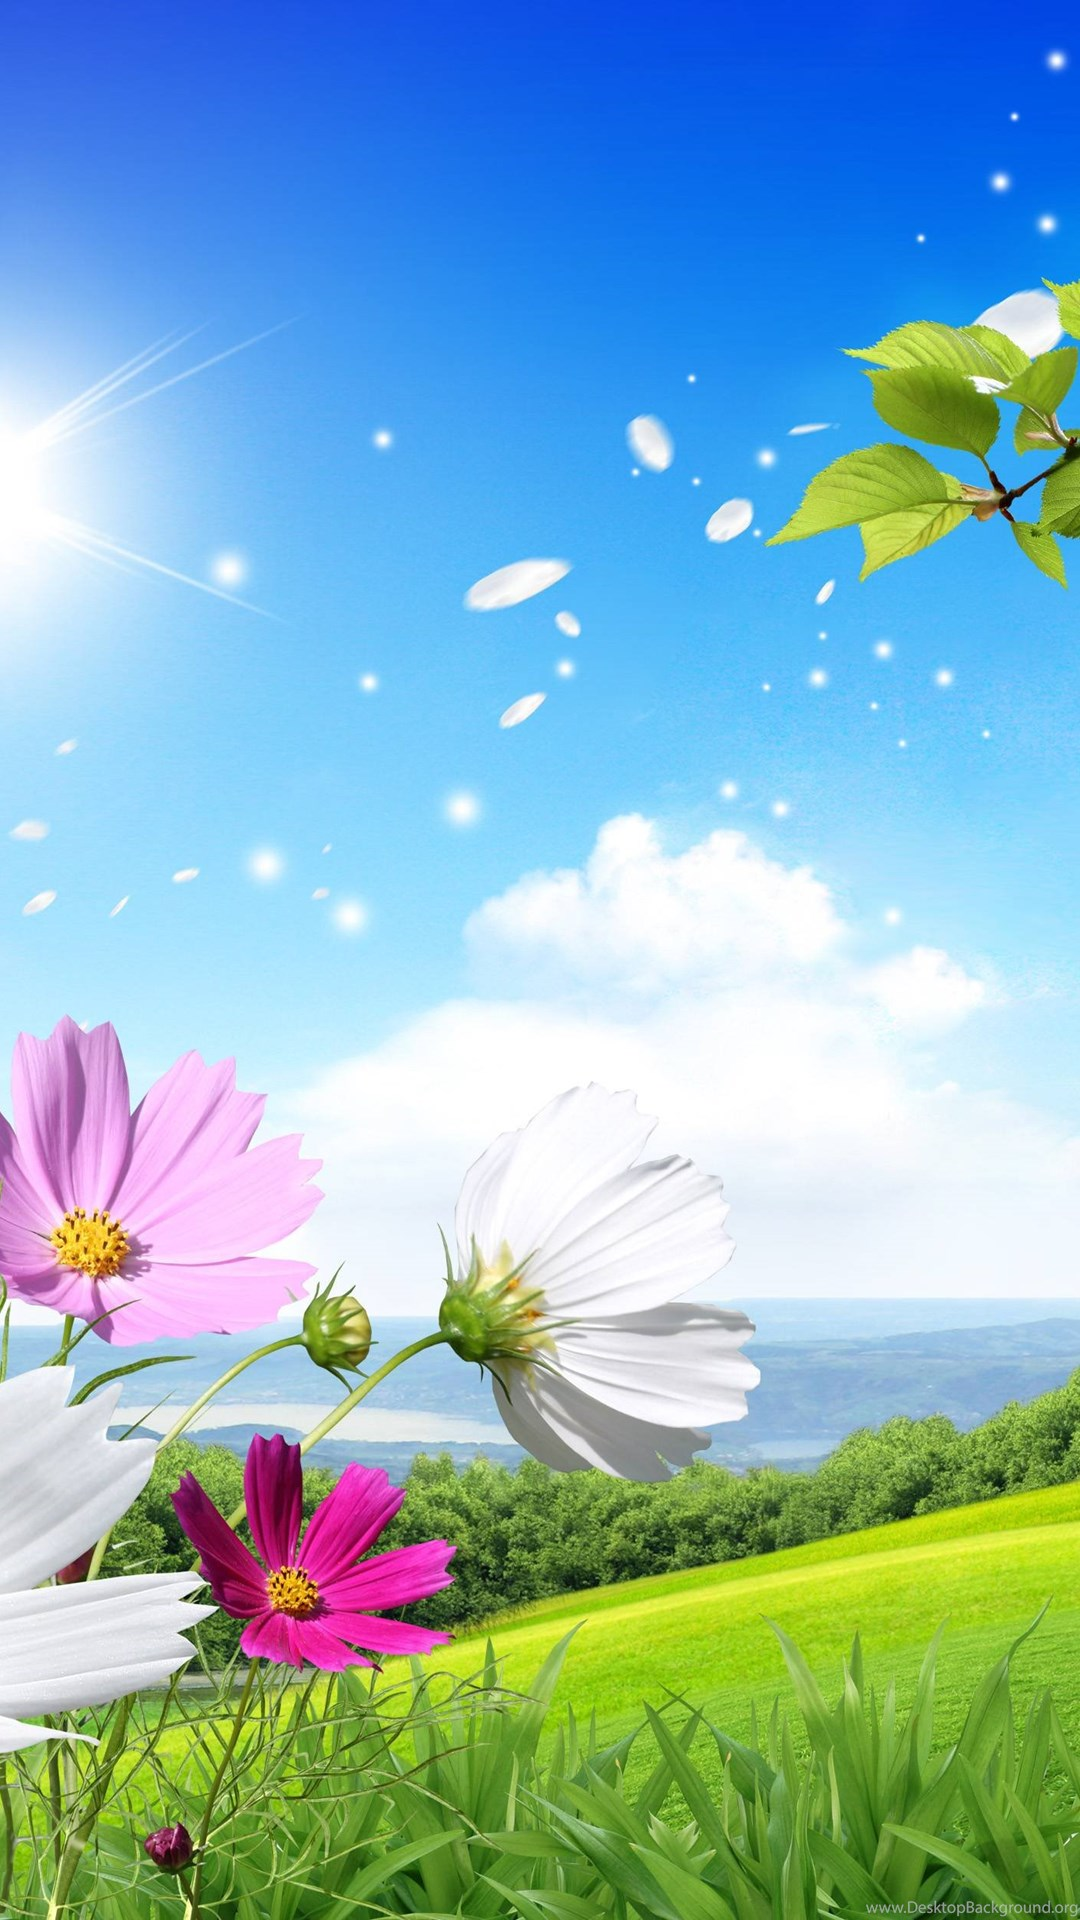 Spring Wallpapers For Iphone 6 702689   HD Wallpaper Download 1080x1920